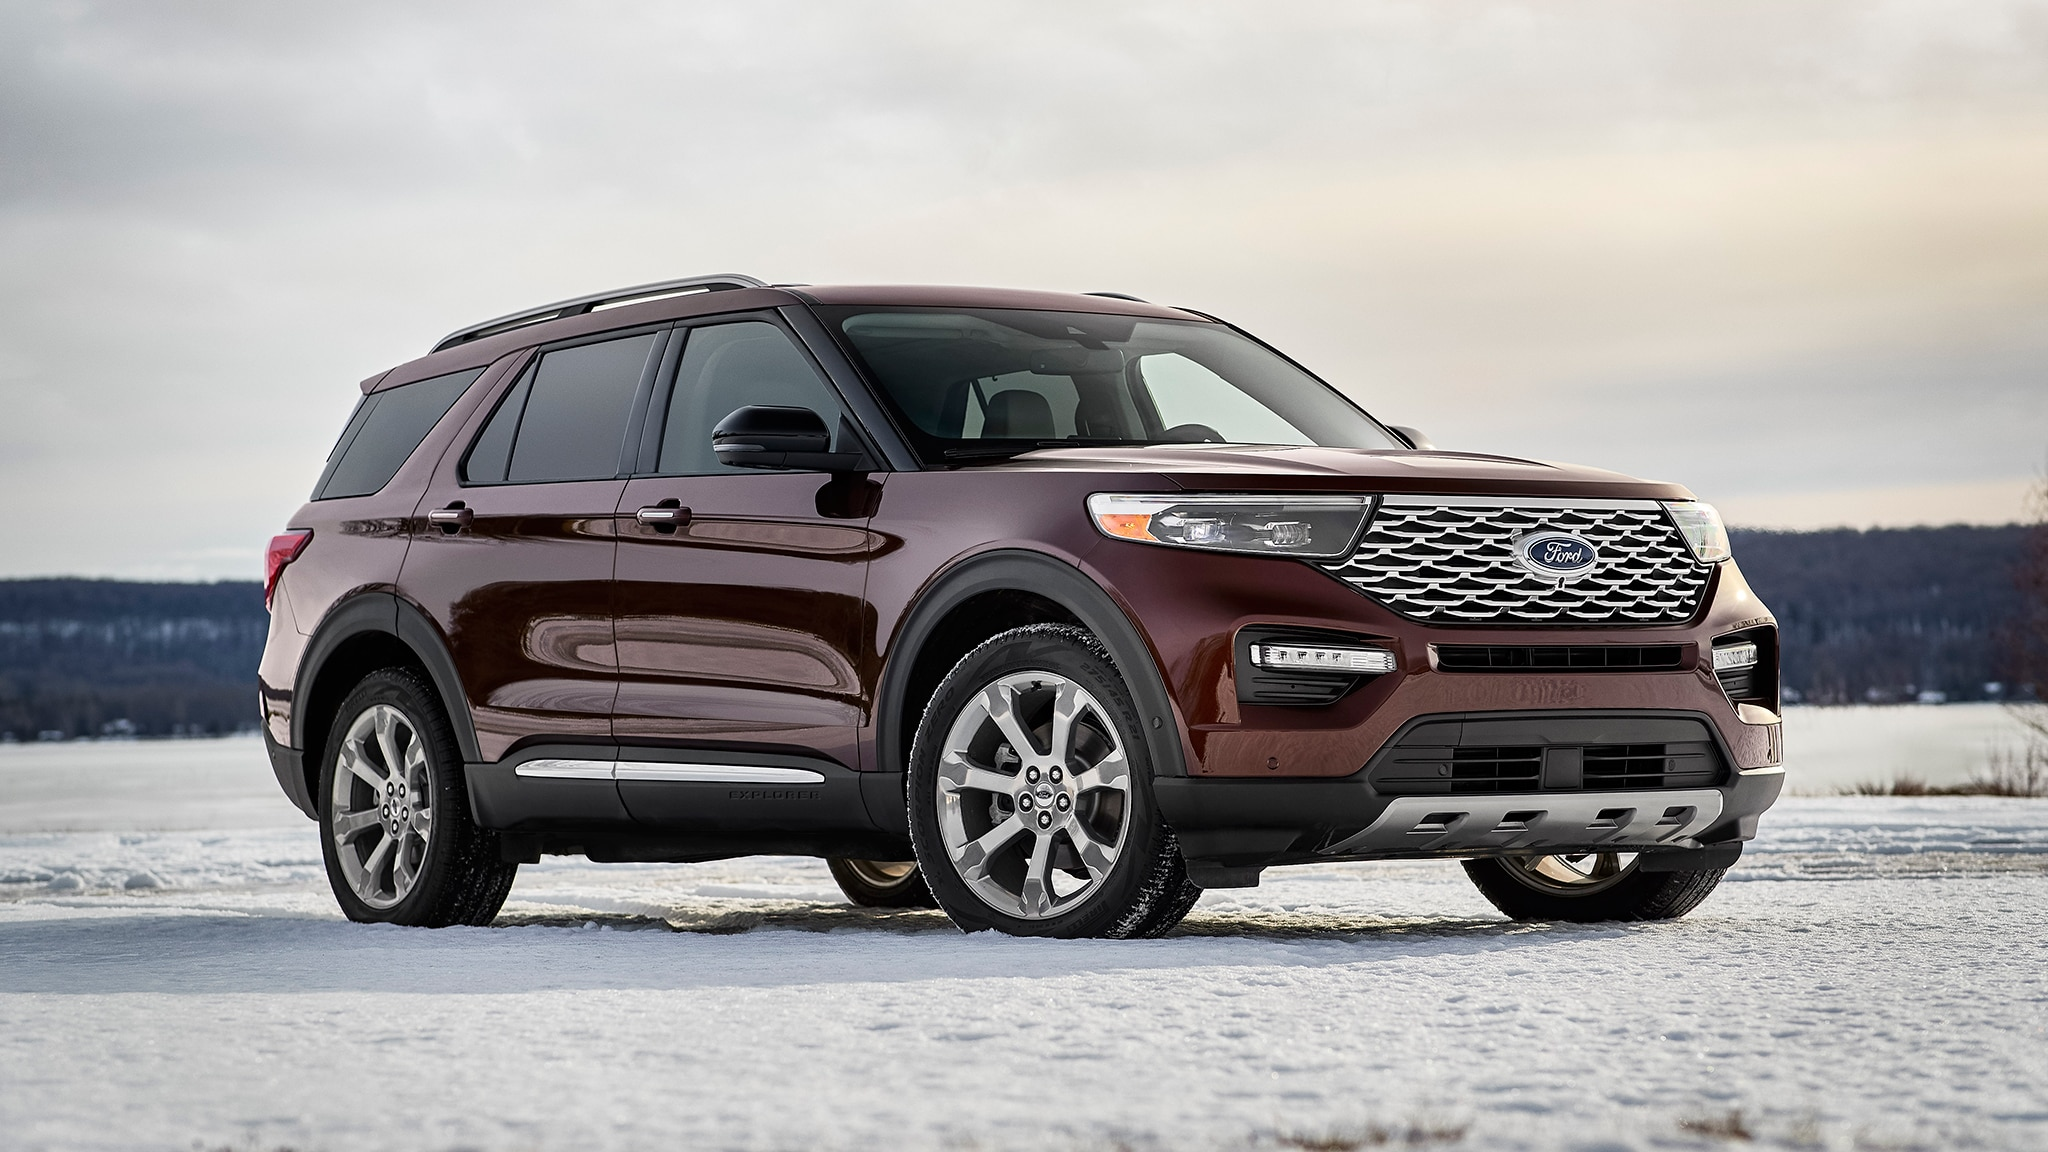 2020 Ford Explorer Photos and Details: What You Need to Know | Automobile Magazine